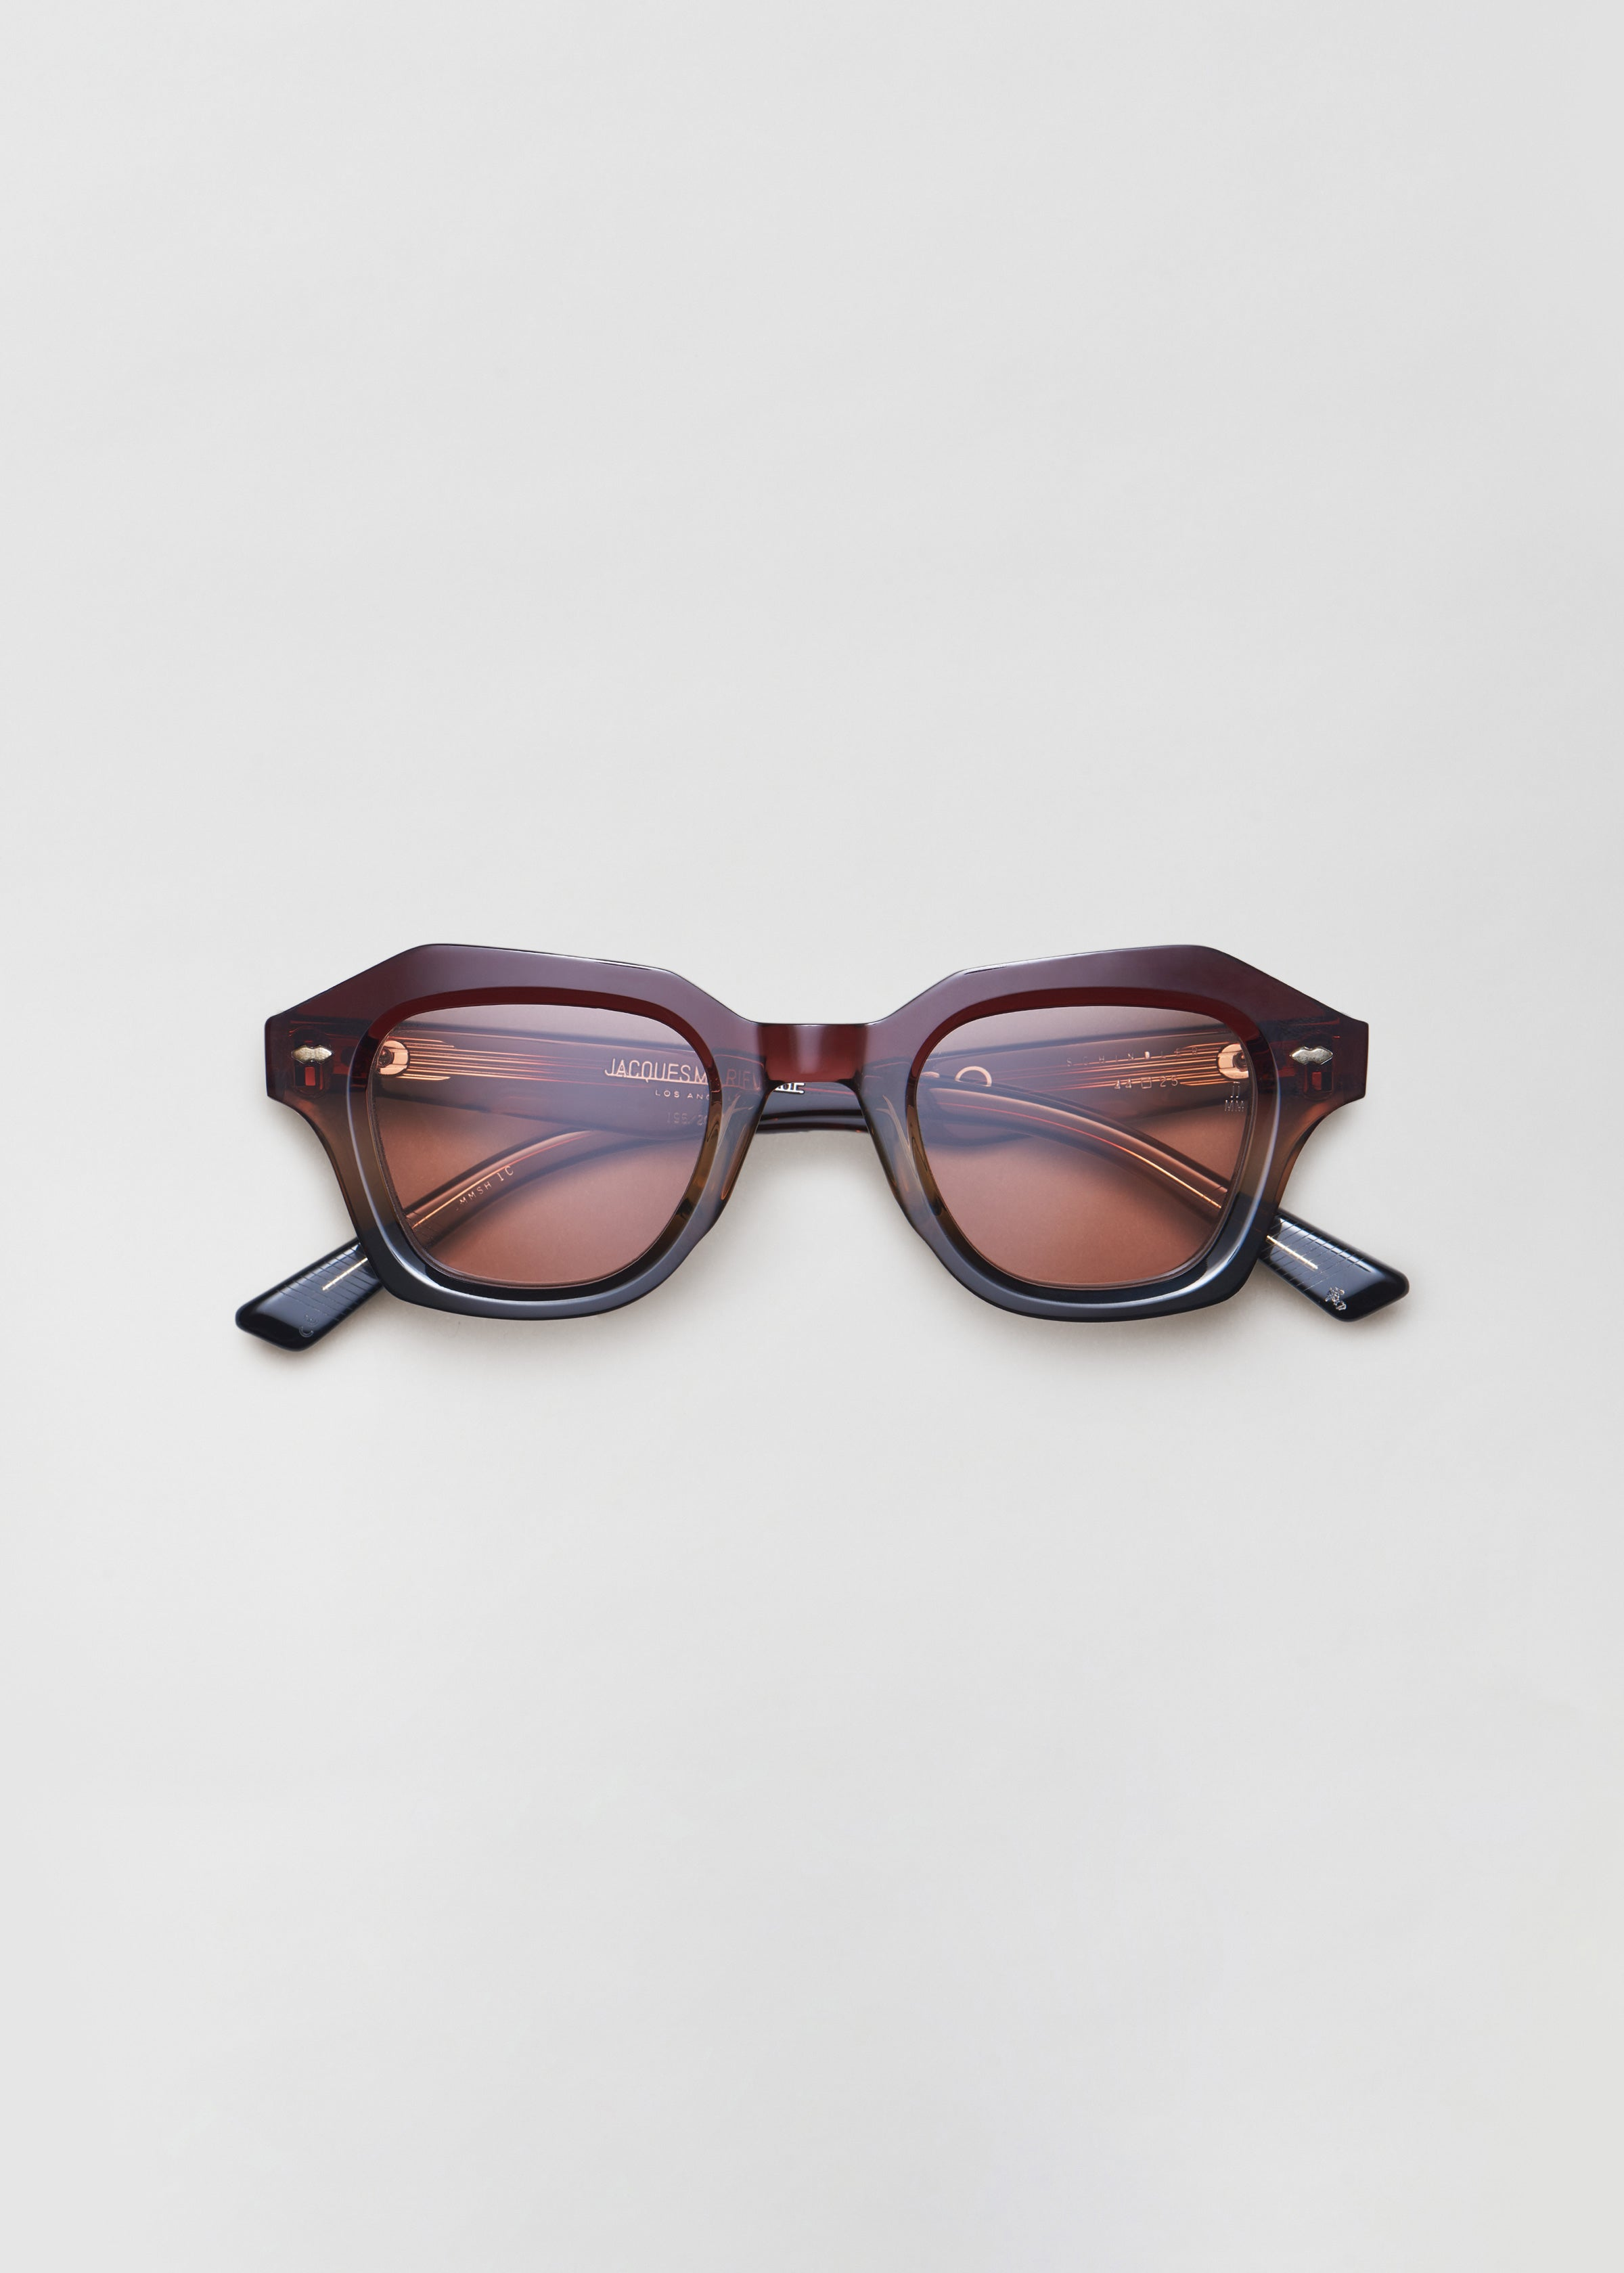 Schindler Sunglasses in Vintage Tort - Co Collections